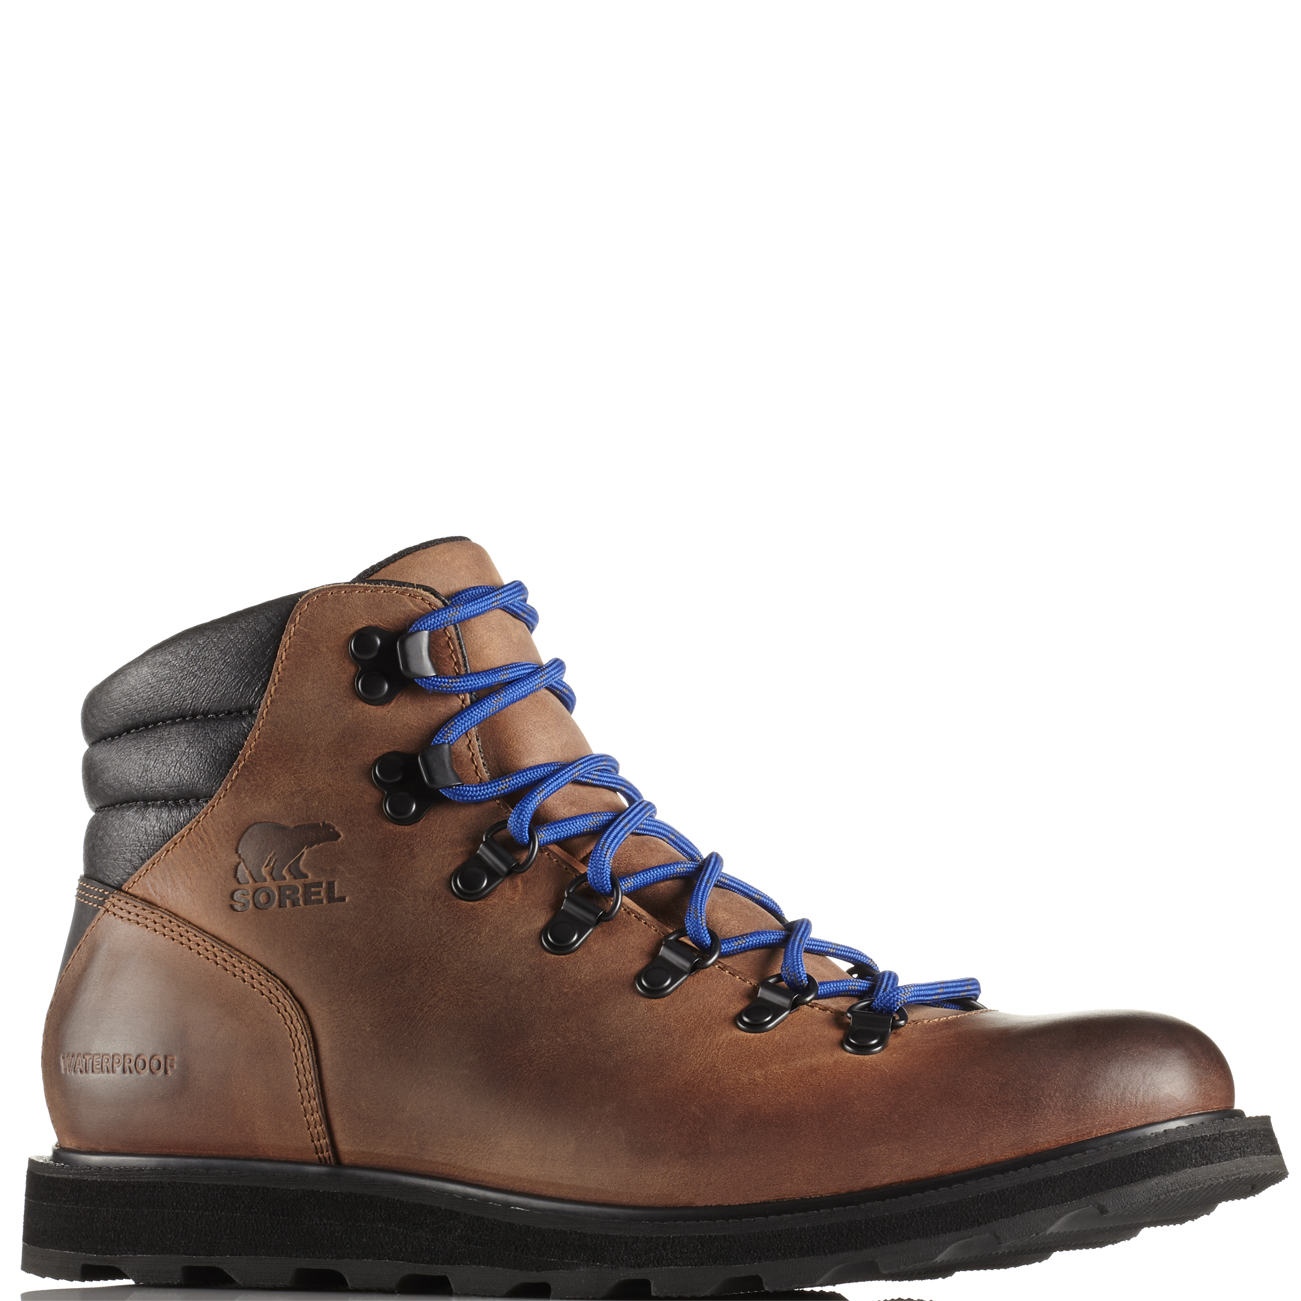 cc3aebf2bb9 Details about Mens Sorel Madson Hiker Waterproof Hiking Walking Leather  Ankle Boots UK 7-13